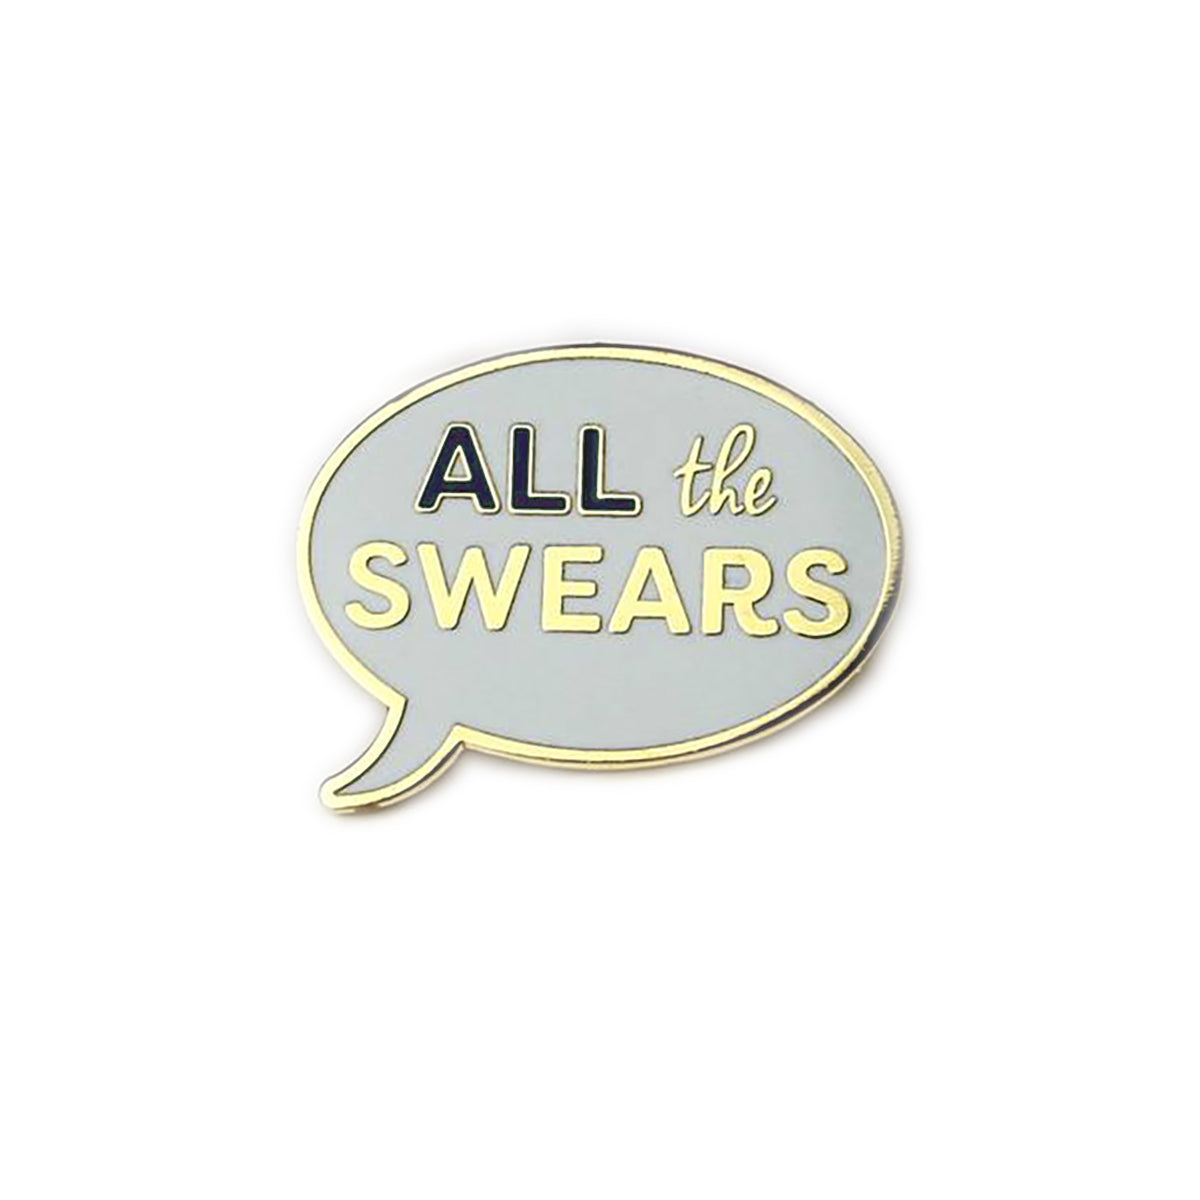 All the Swears Enamel Pin - Auntie Mims